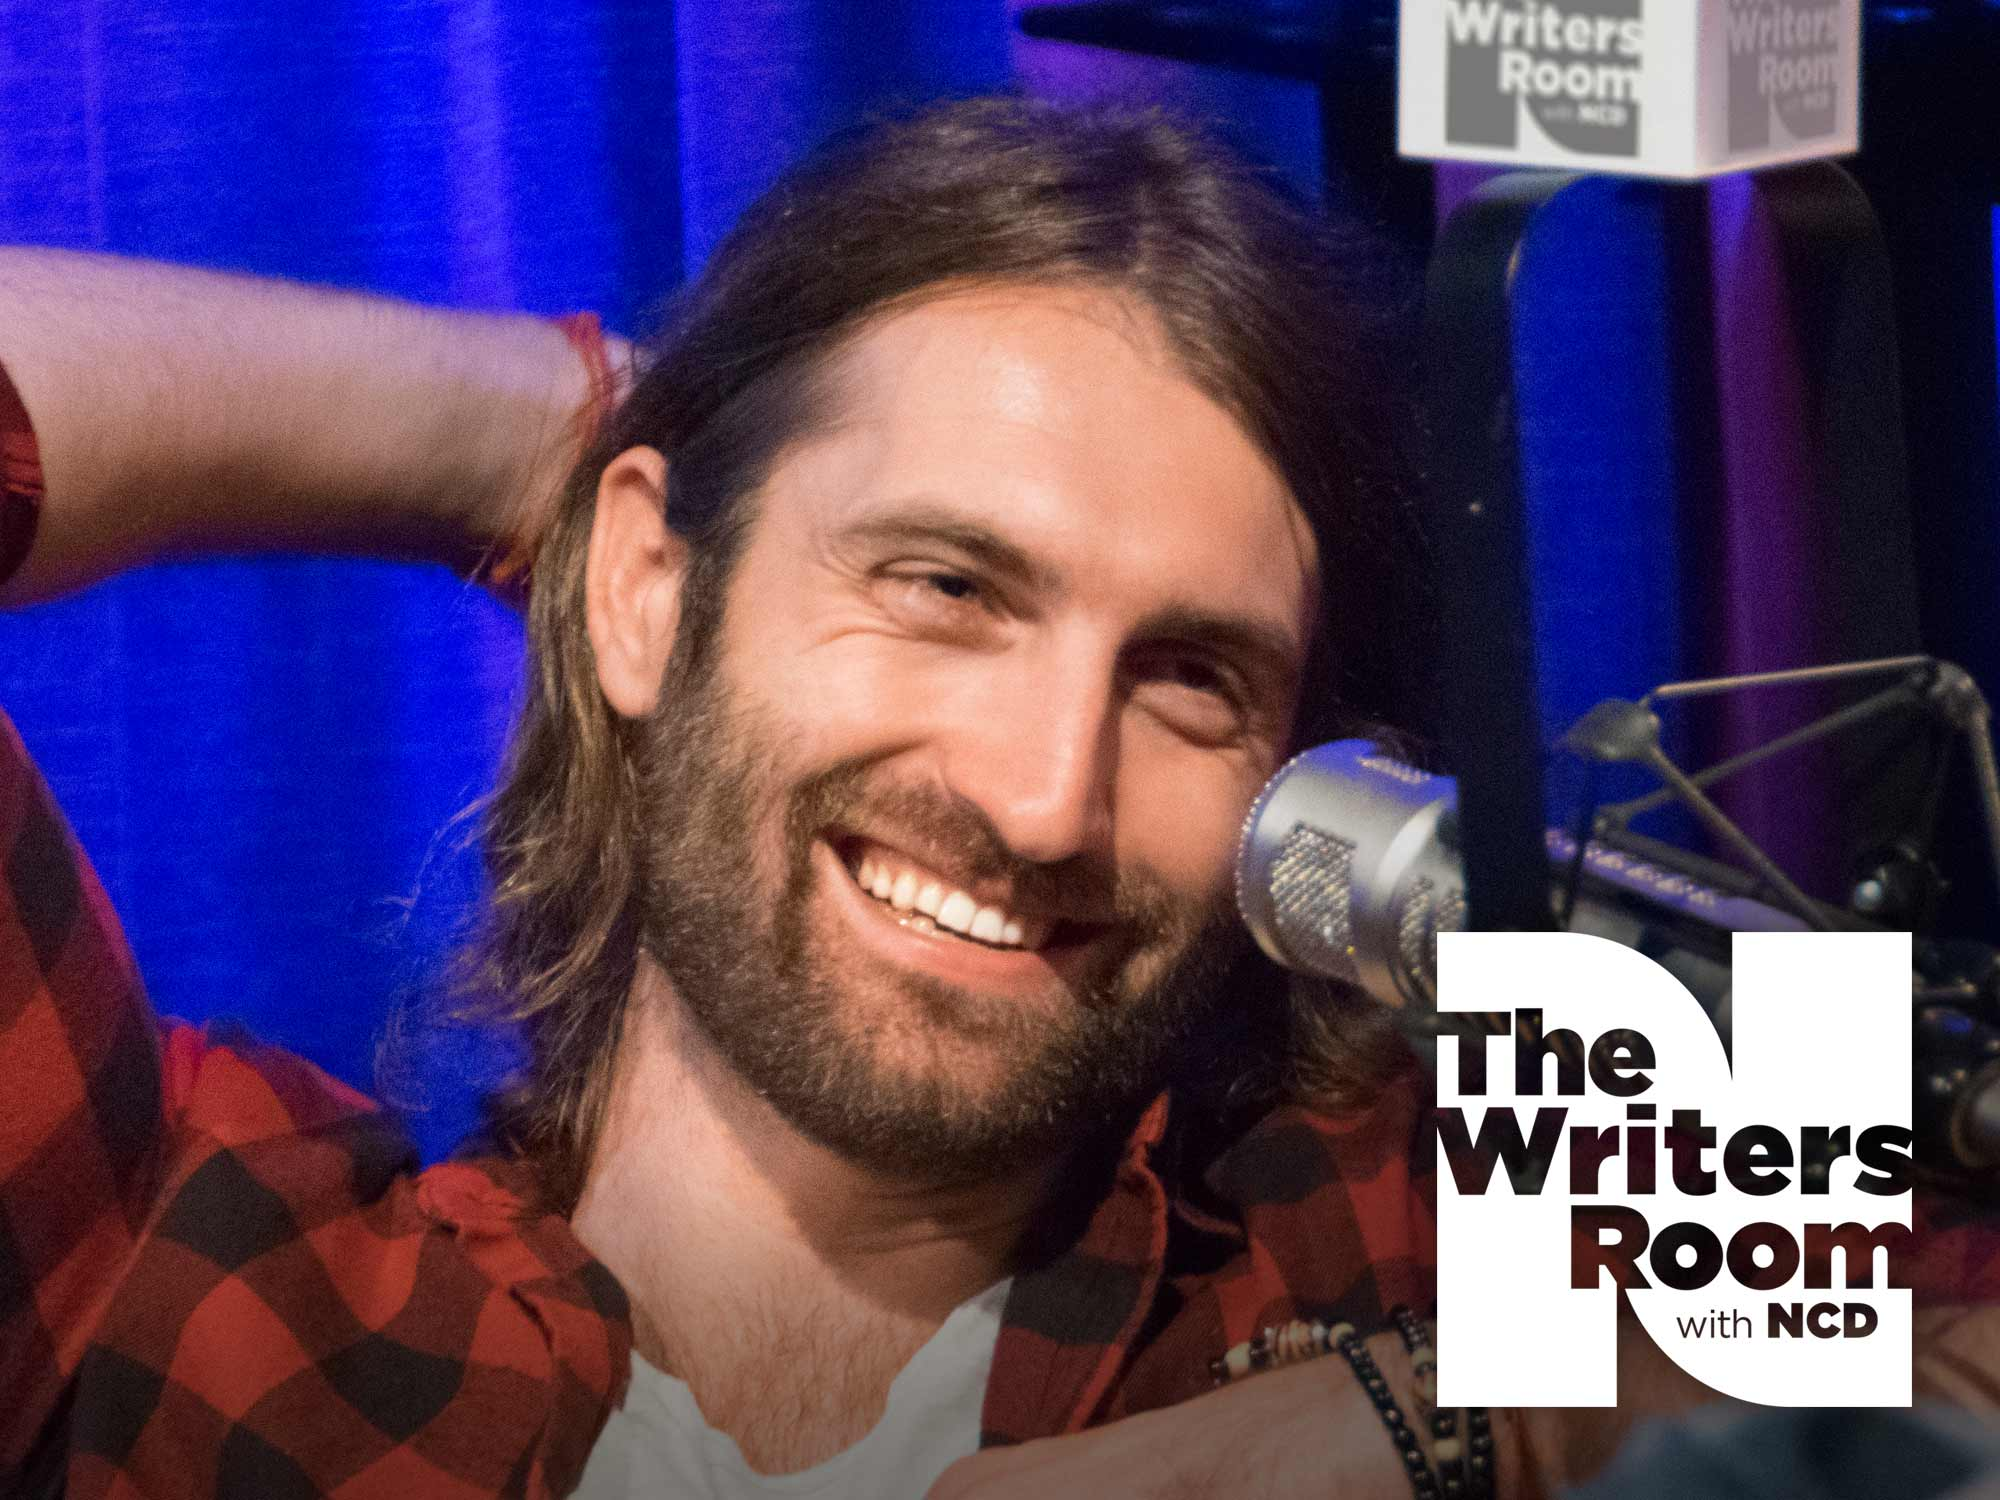 """Ryan Hurd Talks Writing Hits for FGL, Dierks Bentley, Blake Shelton, Lady Antebellum & More, His Upcoming Debut Album and New Single, """"Love In a Bar"""""""